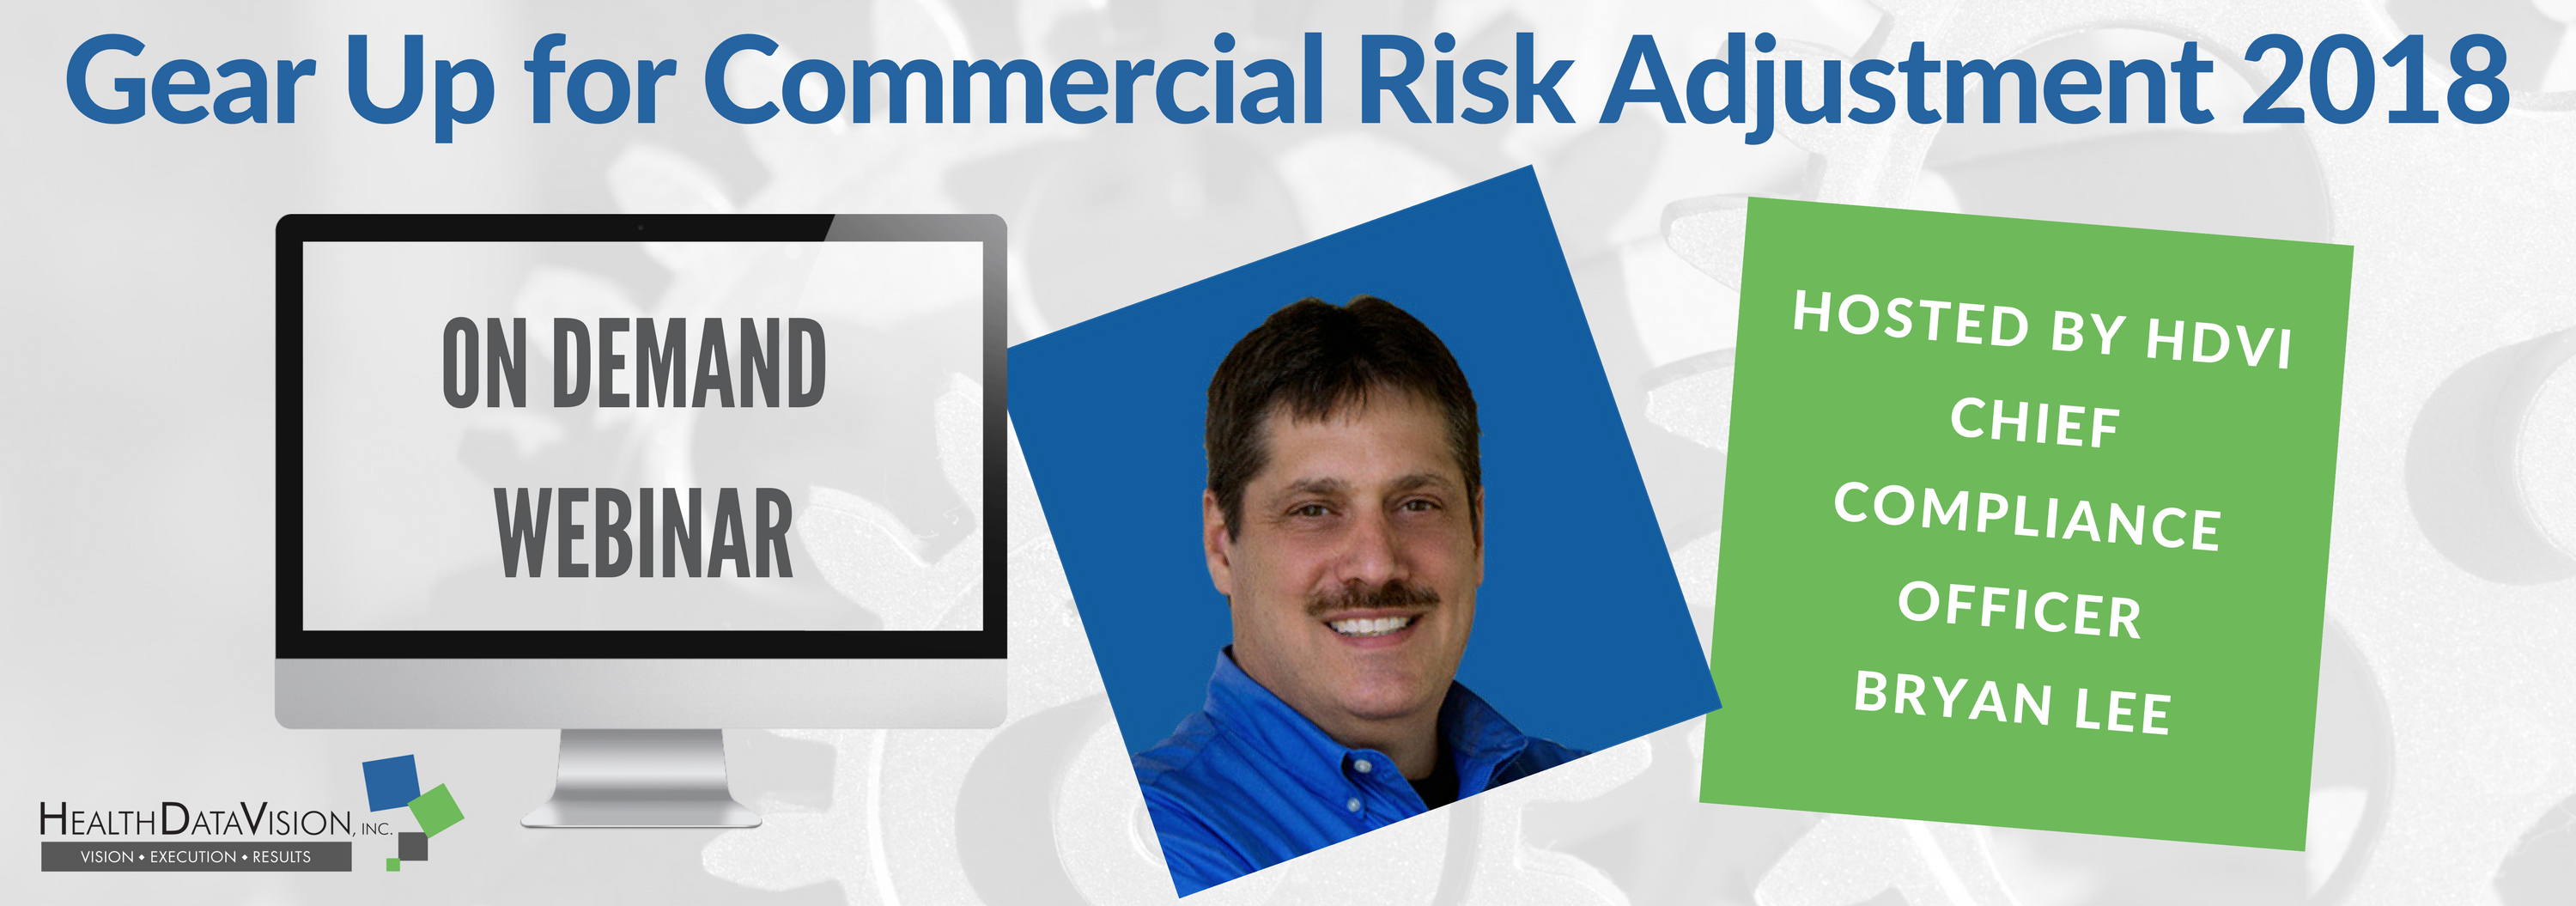 Gear Up Risk Adjustment BL Webinar New v.2.png